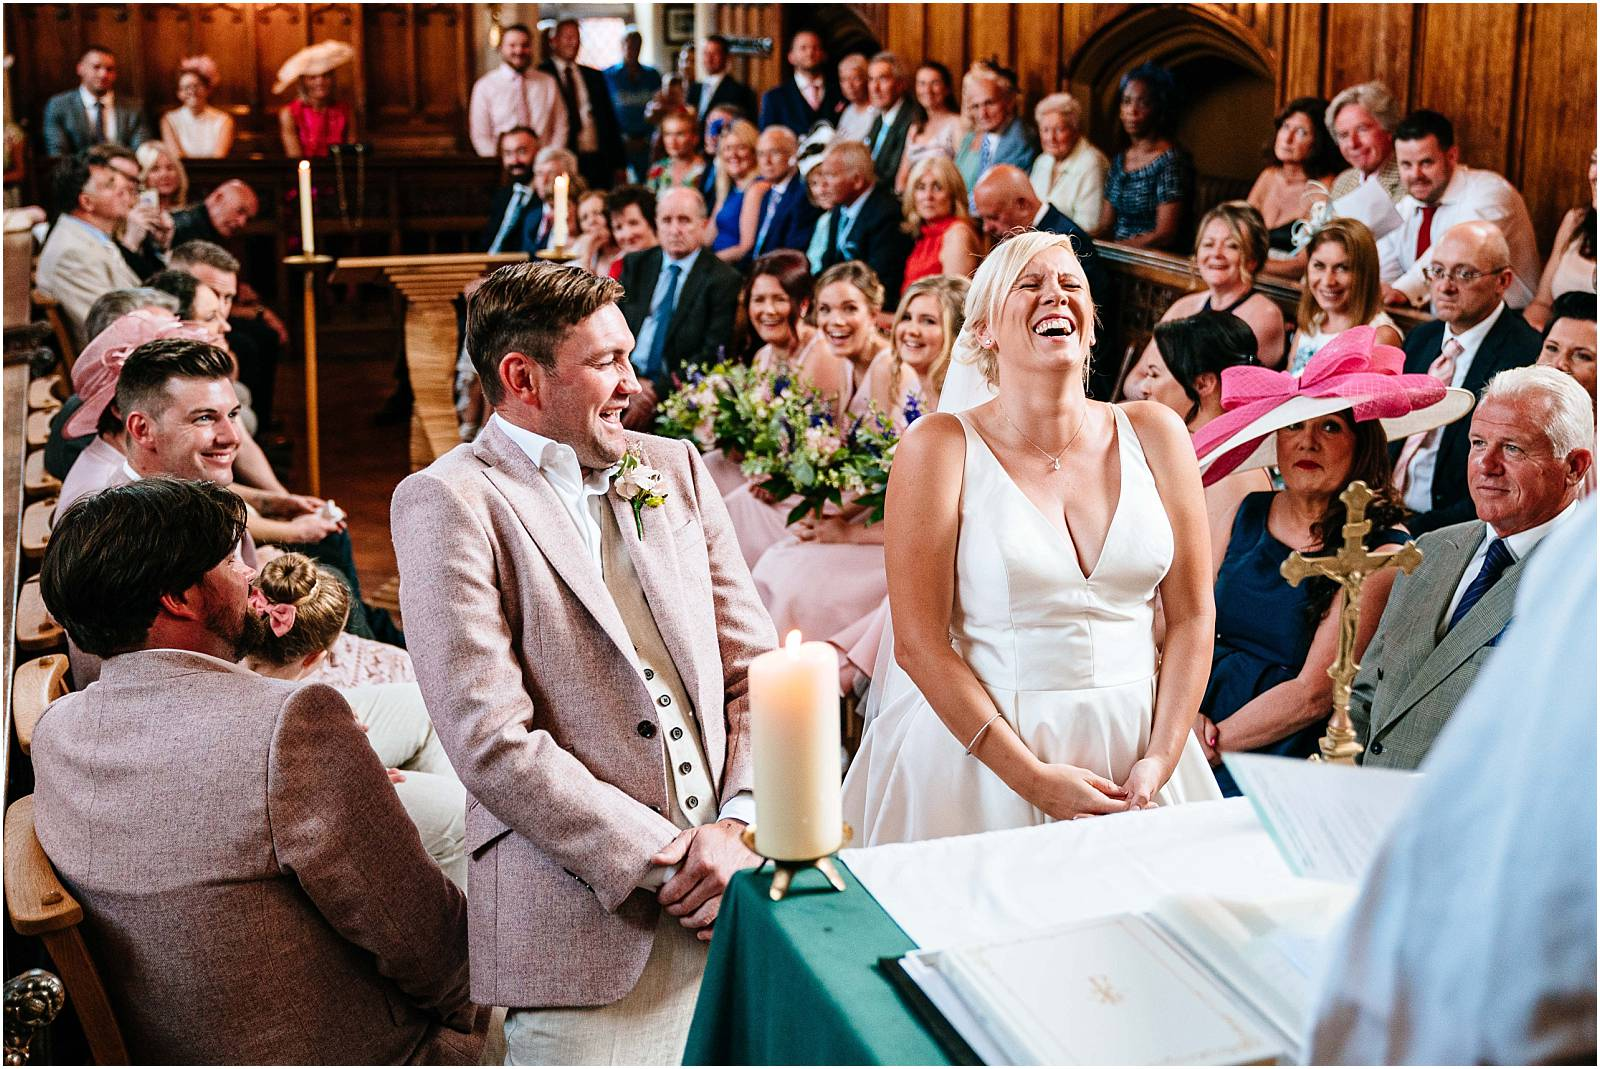 Marquee Wedding Photography – Tara & Garry's gorgeous Virginia Water wedding